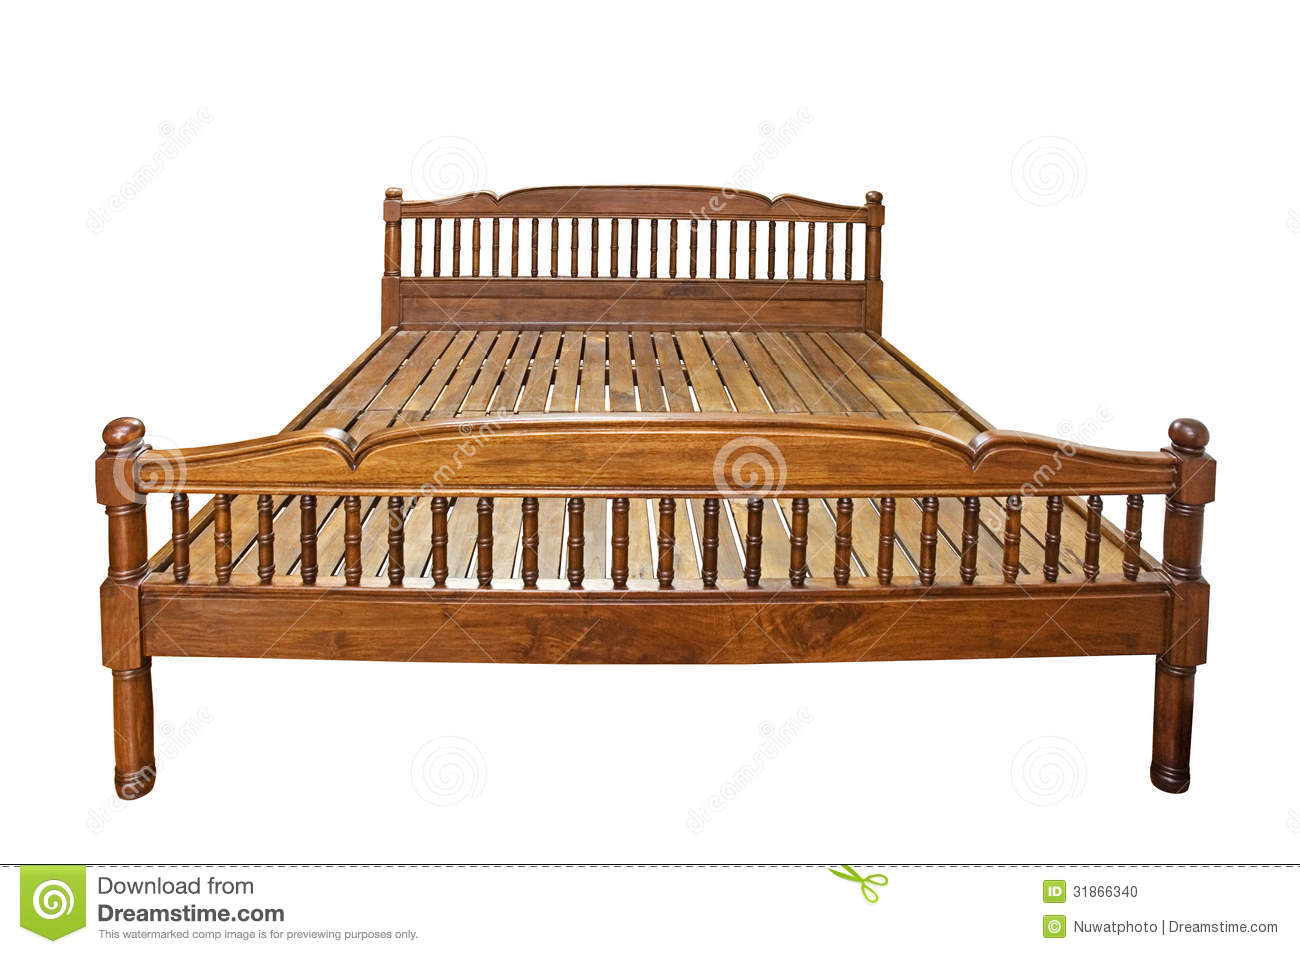 Very Impressive portraiture of Wooden Bed Stock Photo Image: 31866340 with #85A724 color and 1300x954 pixels